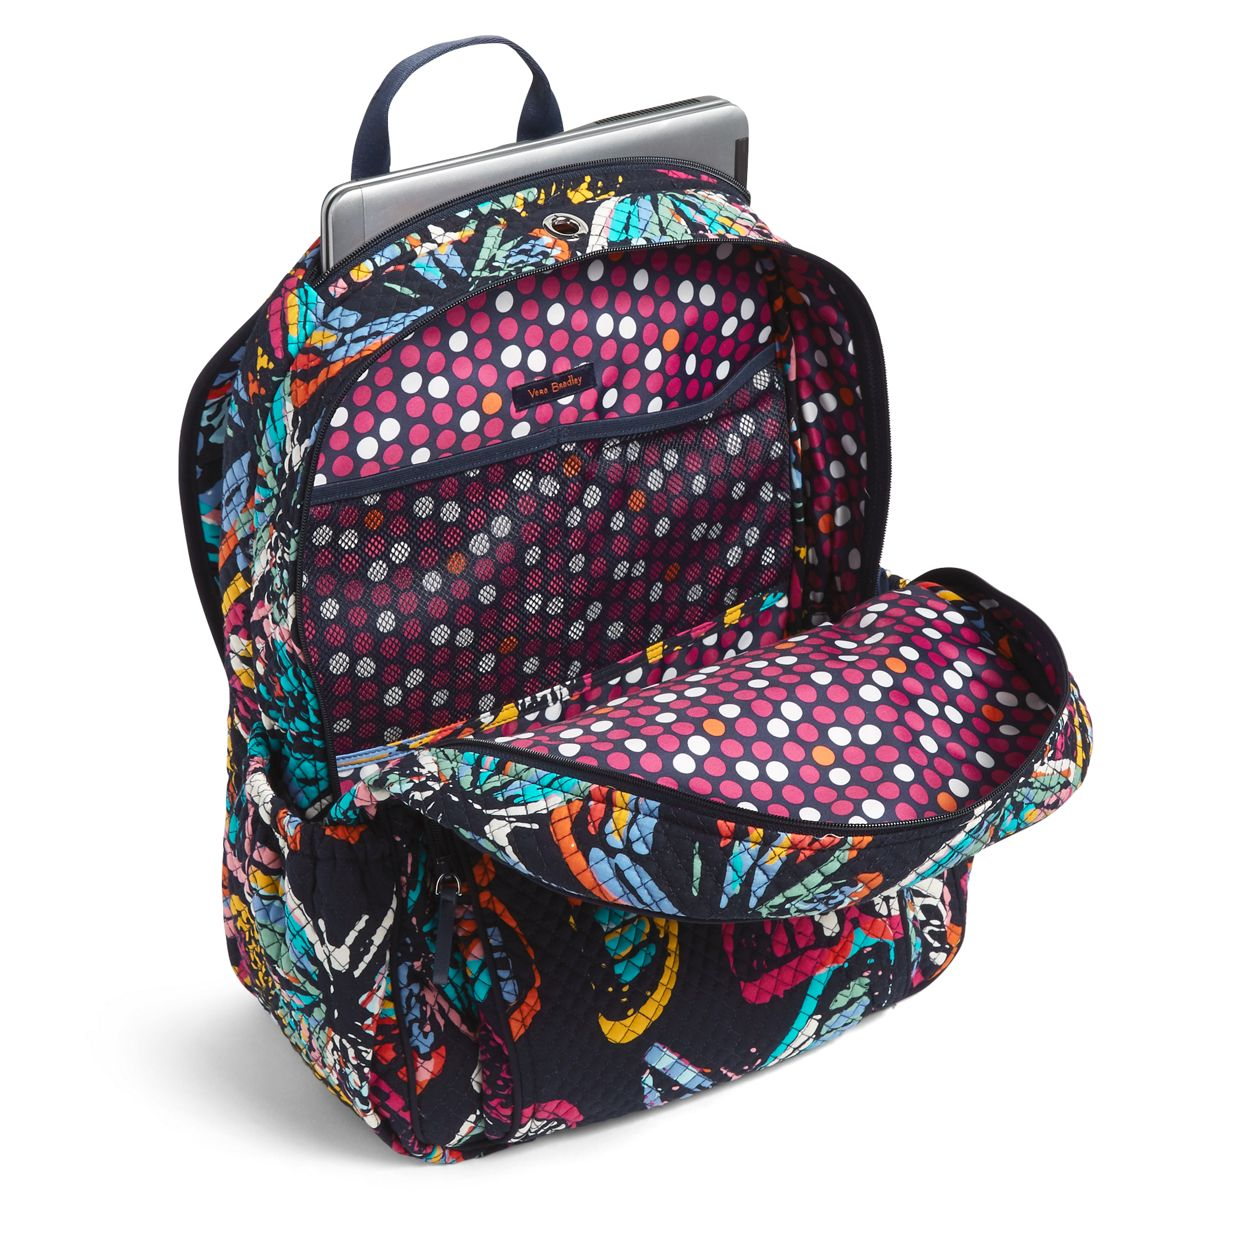 Image of Iconic Campus Backpack in Butterfly Flutter 89f7189893b34